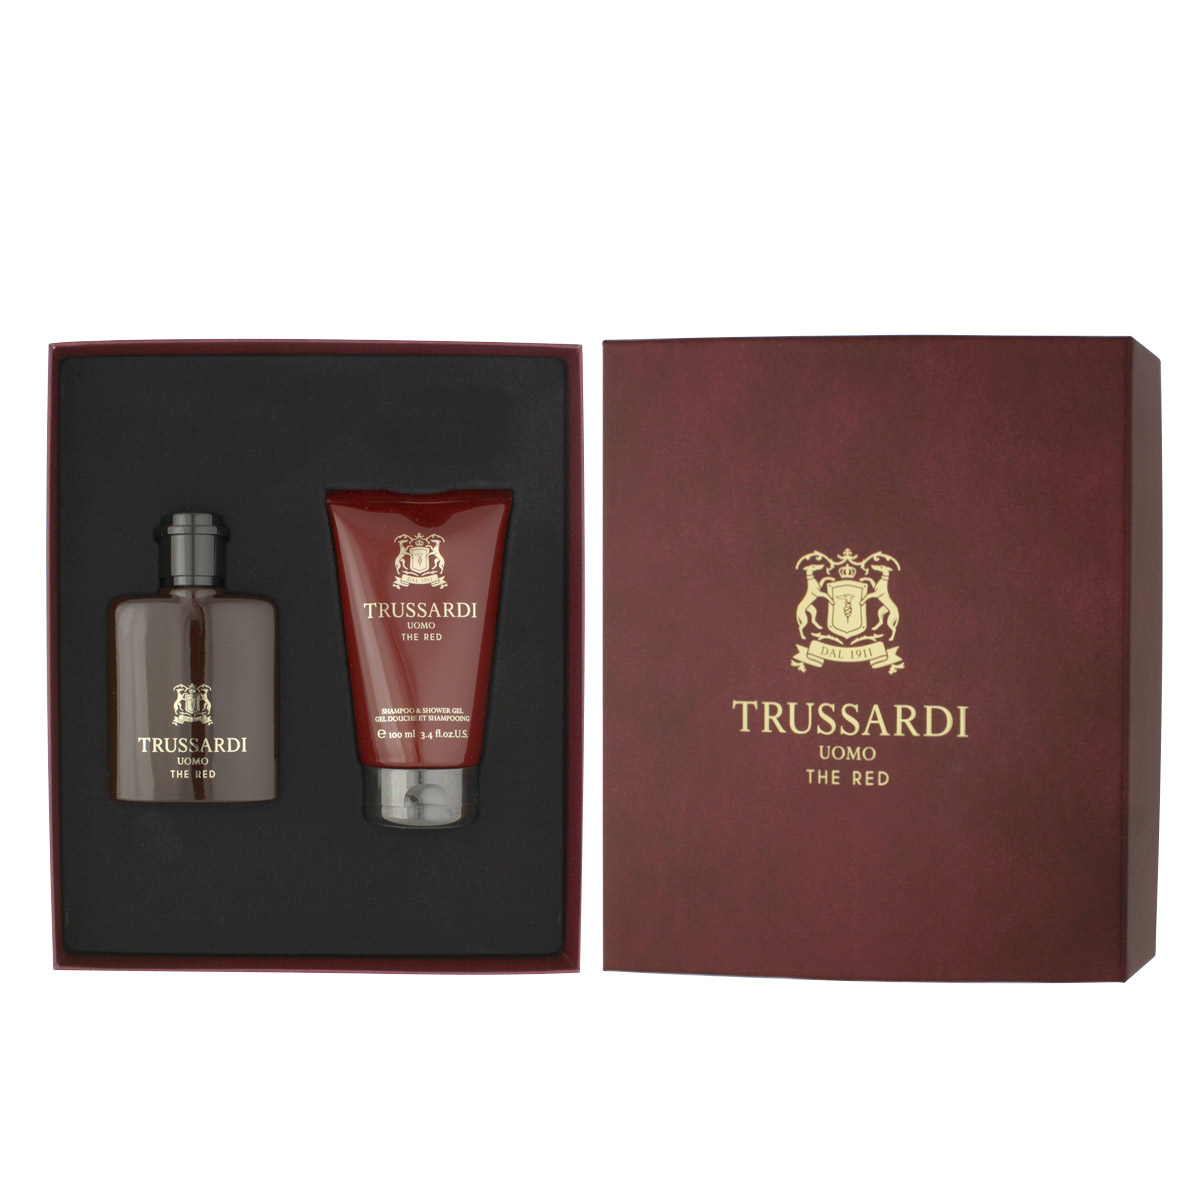 Trussardi Uomo The Red EDT 50 ml + SG 100 ml (man) 85916